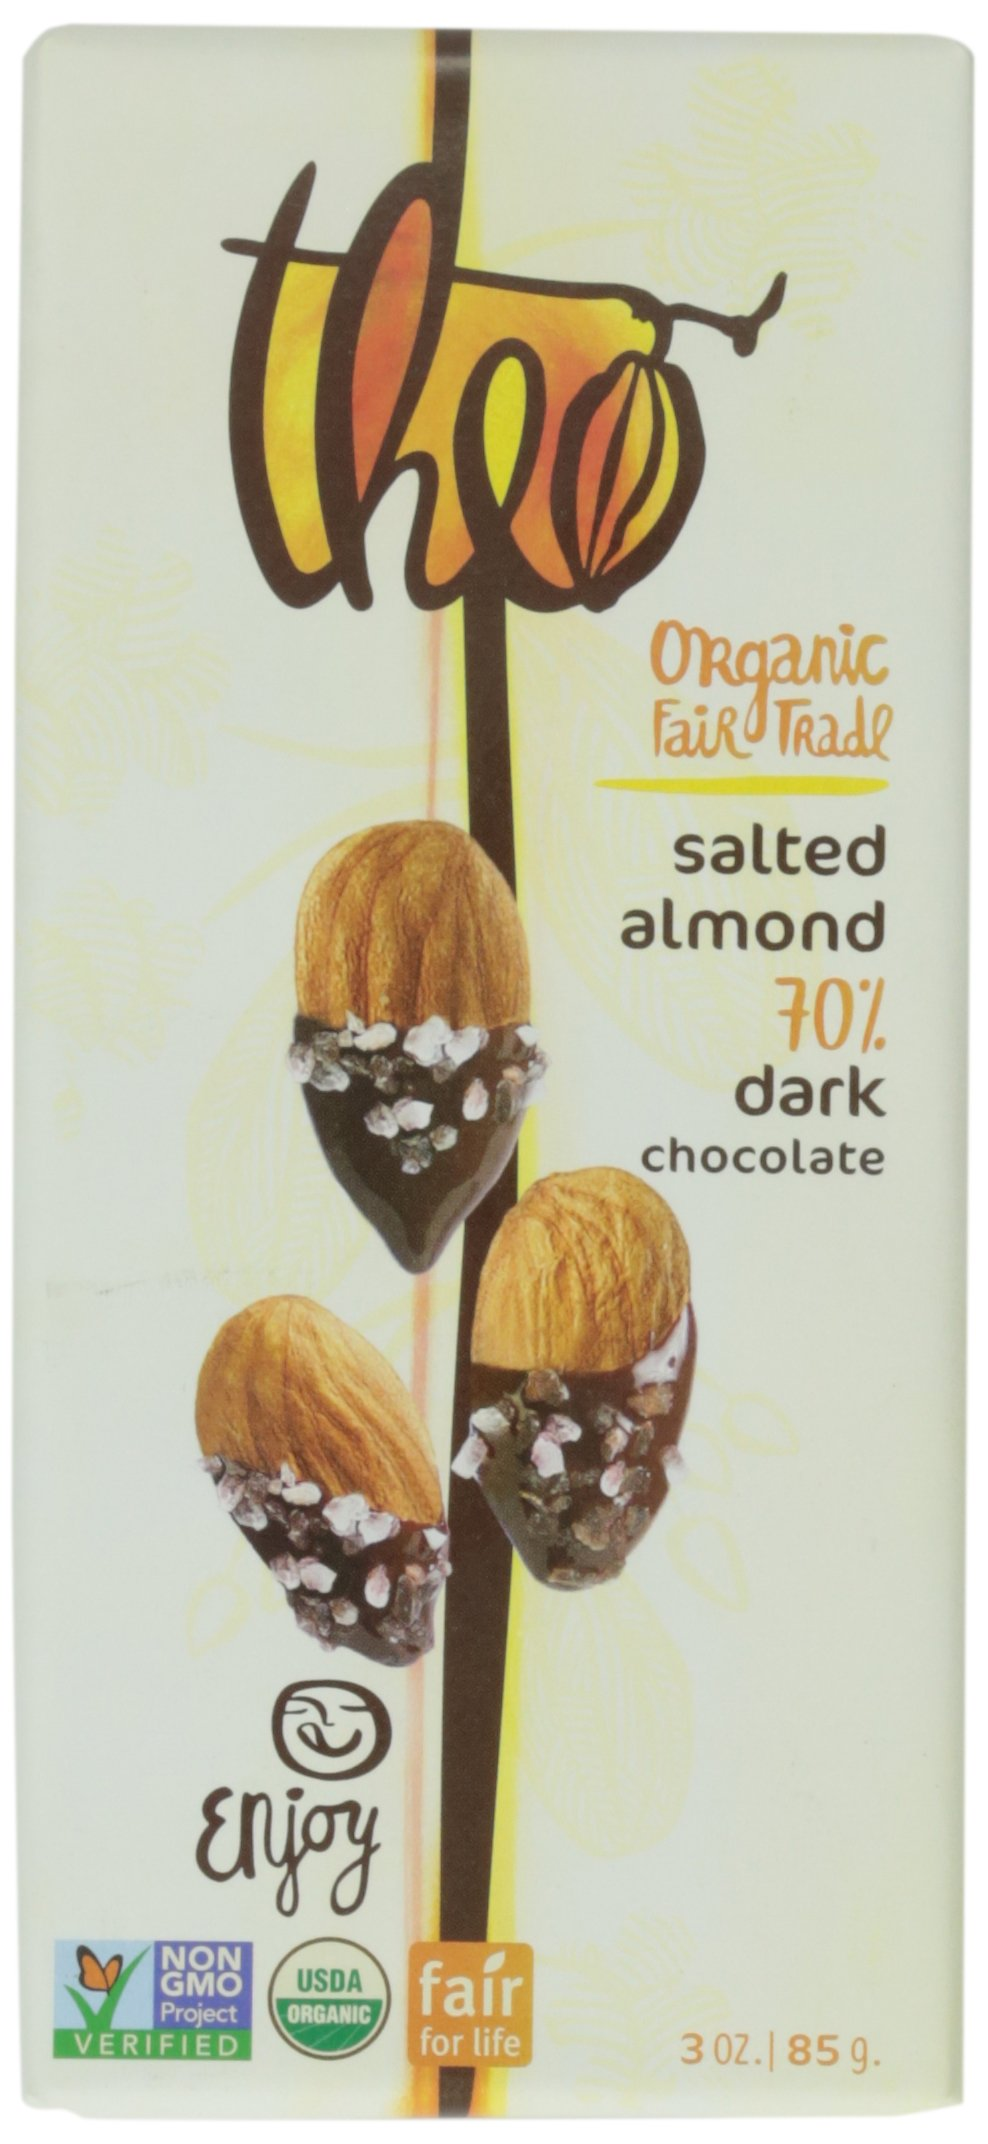 Theo Salted Almond 70% Dark Chocolate, 3 ounce